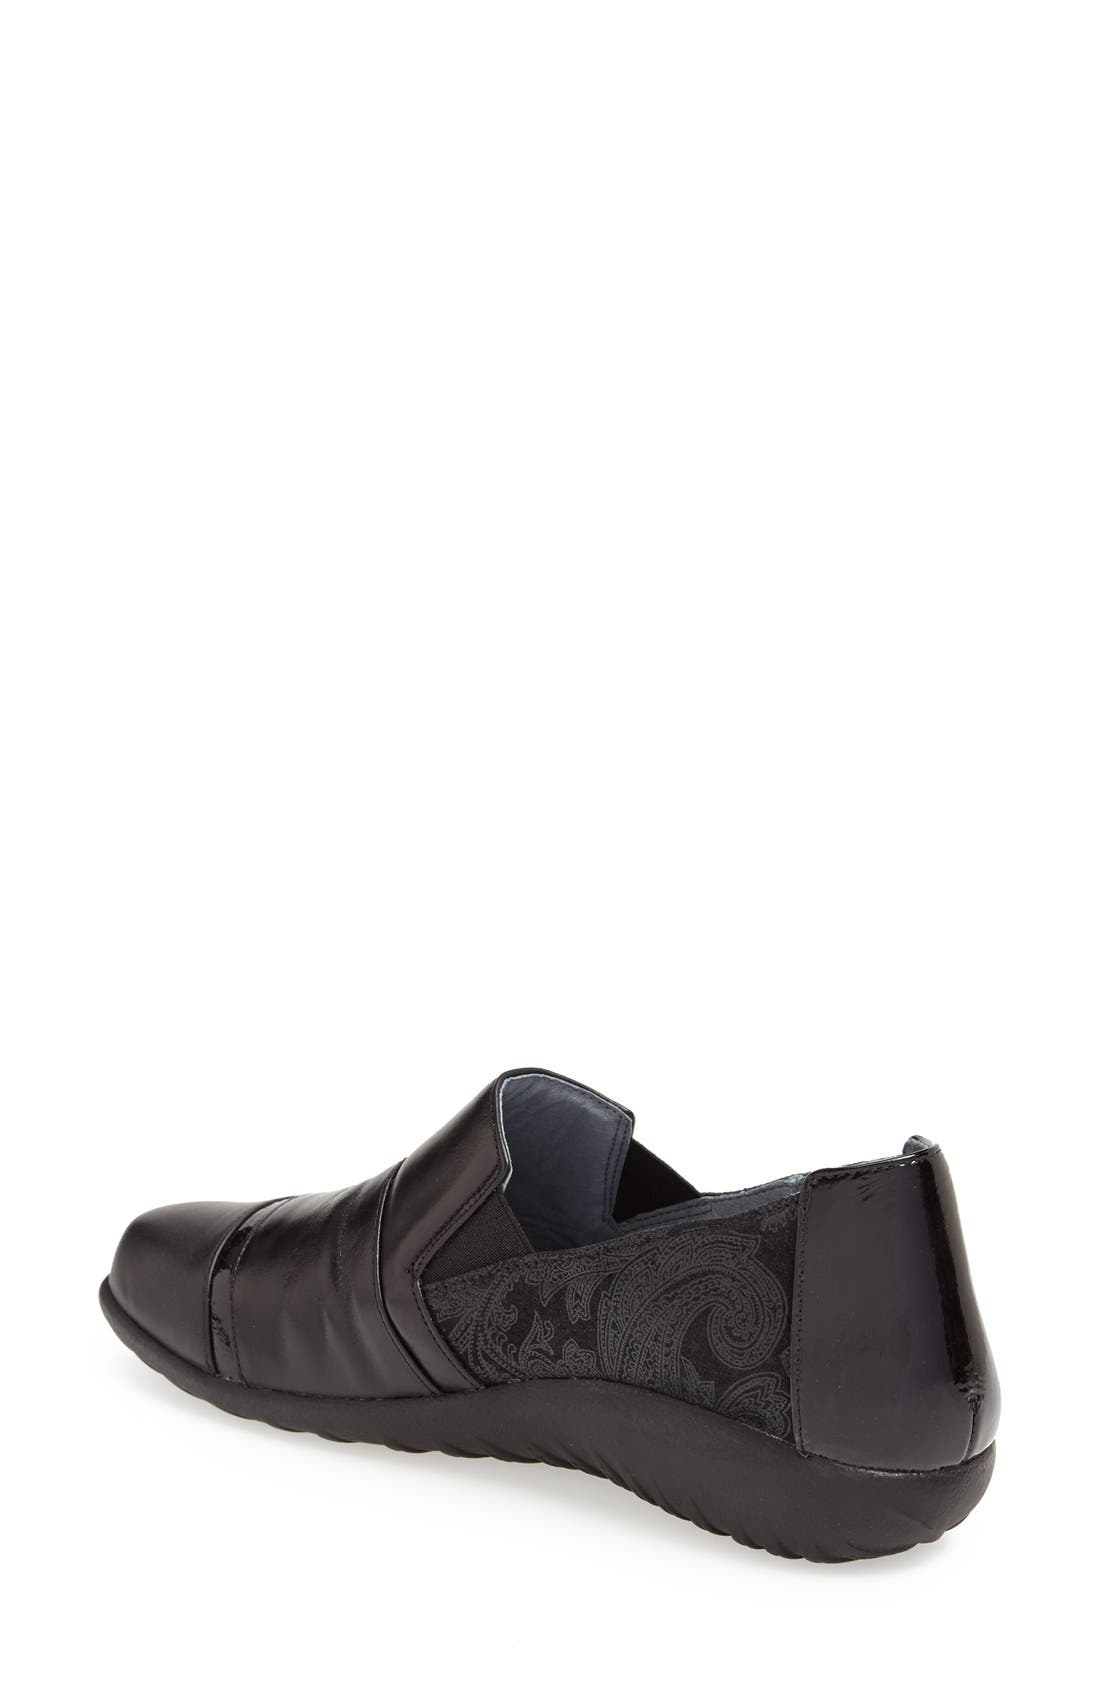 'Miro' Loafer,                             Alternate thumbnail 2, color,                             BLACK LACE